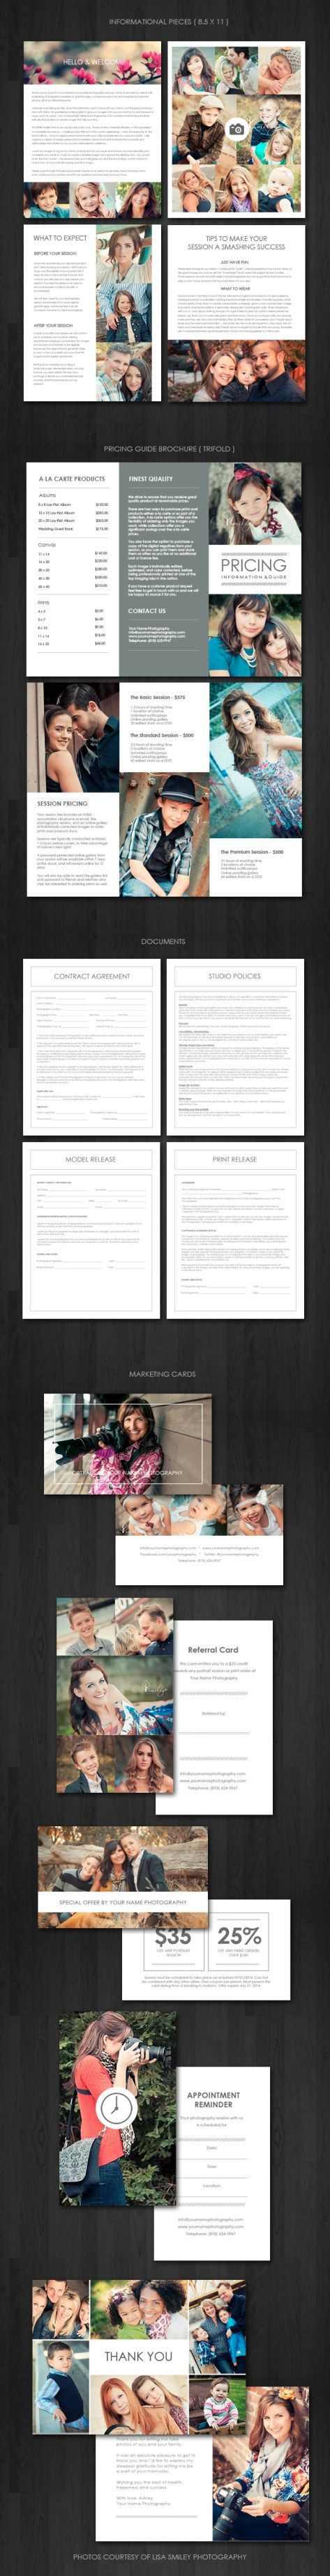 Photographer Marketing Templates :The Ultimate Portrait Photography ...